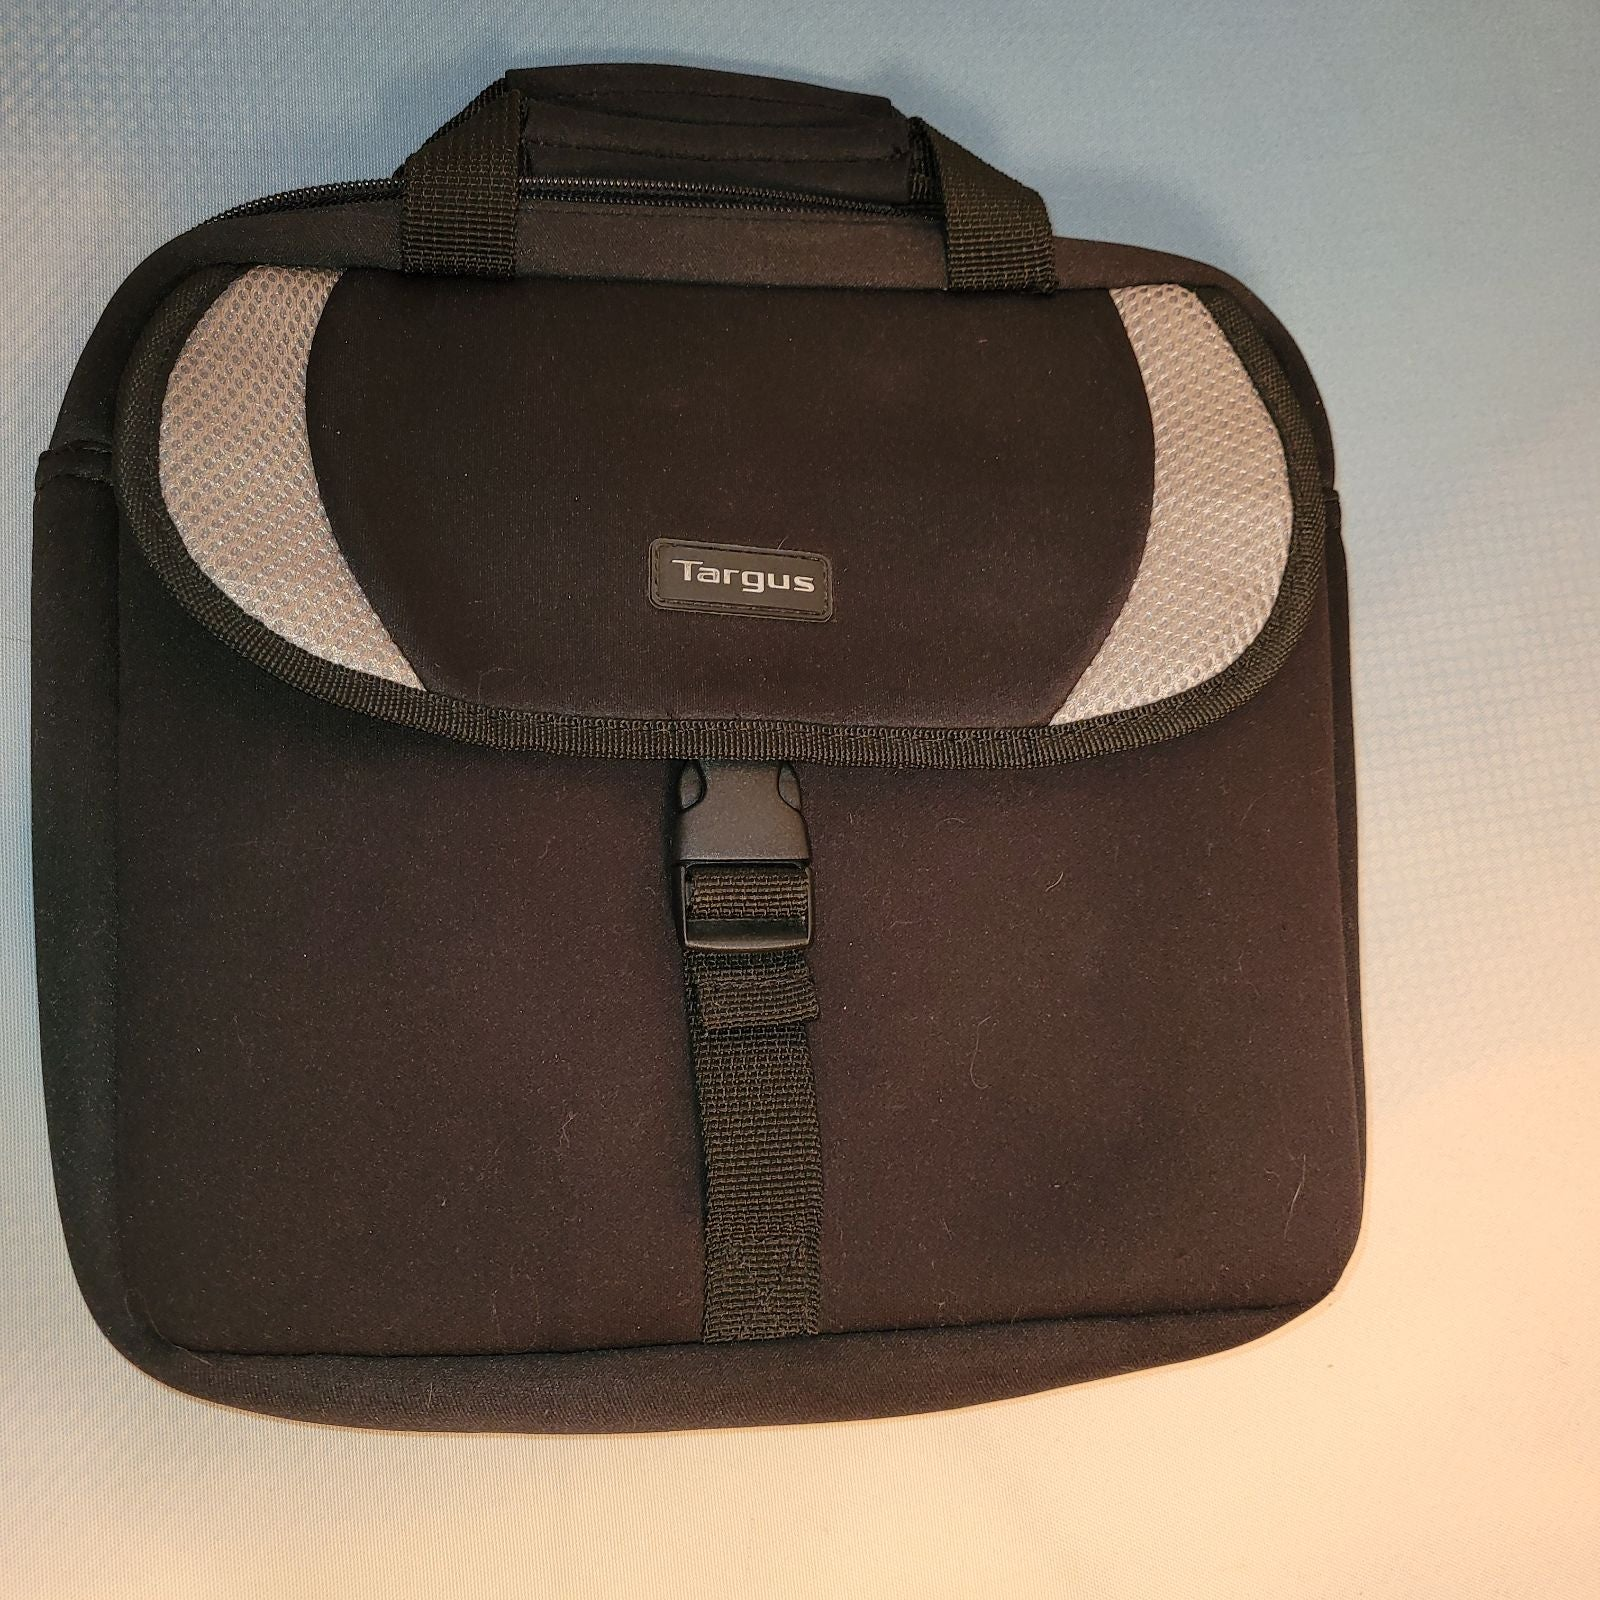 Targus tablet device carrying case bag